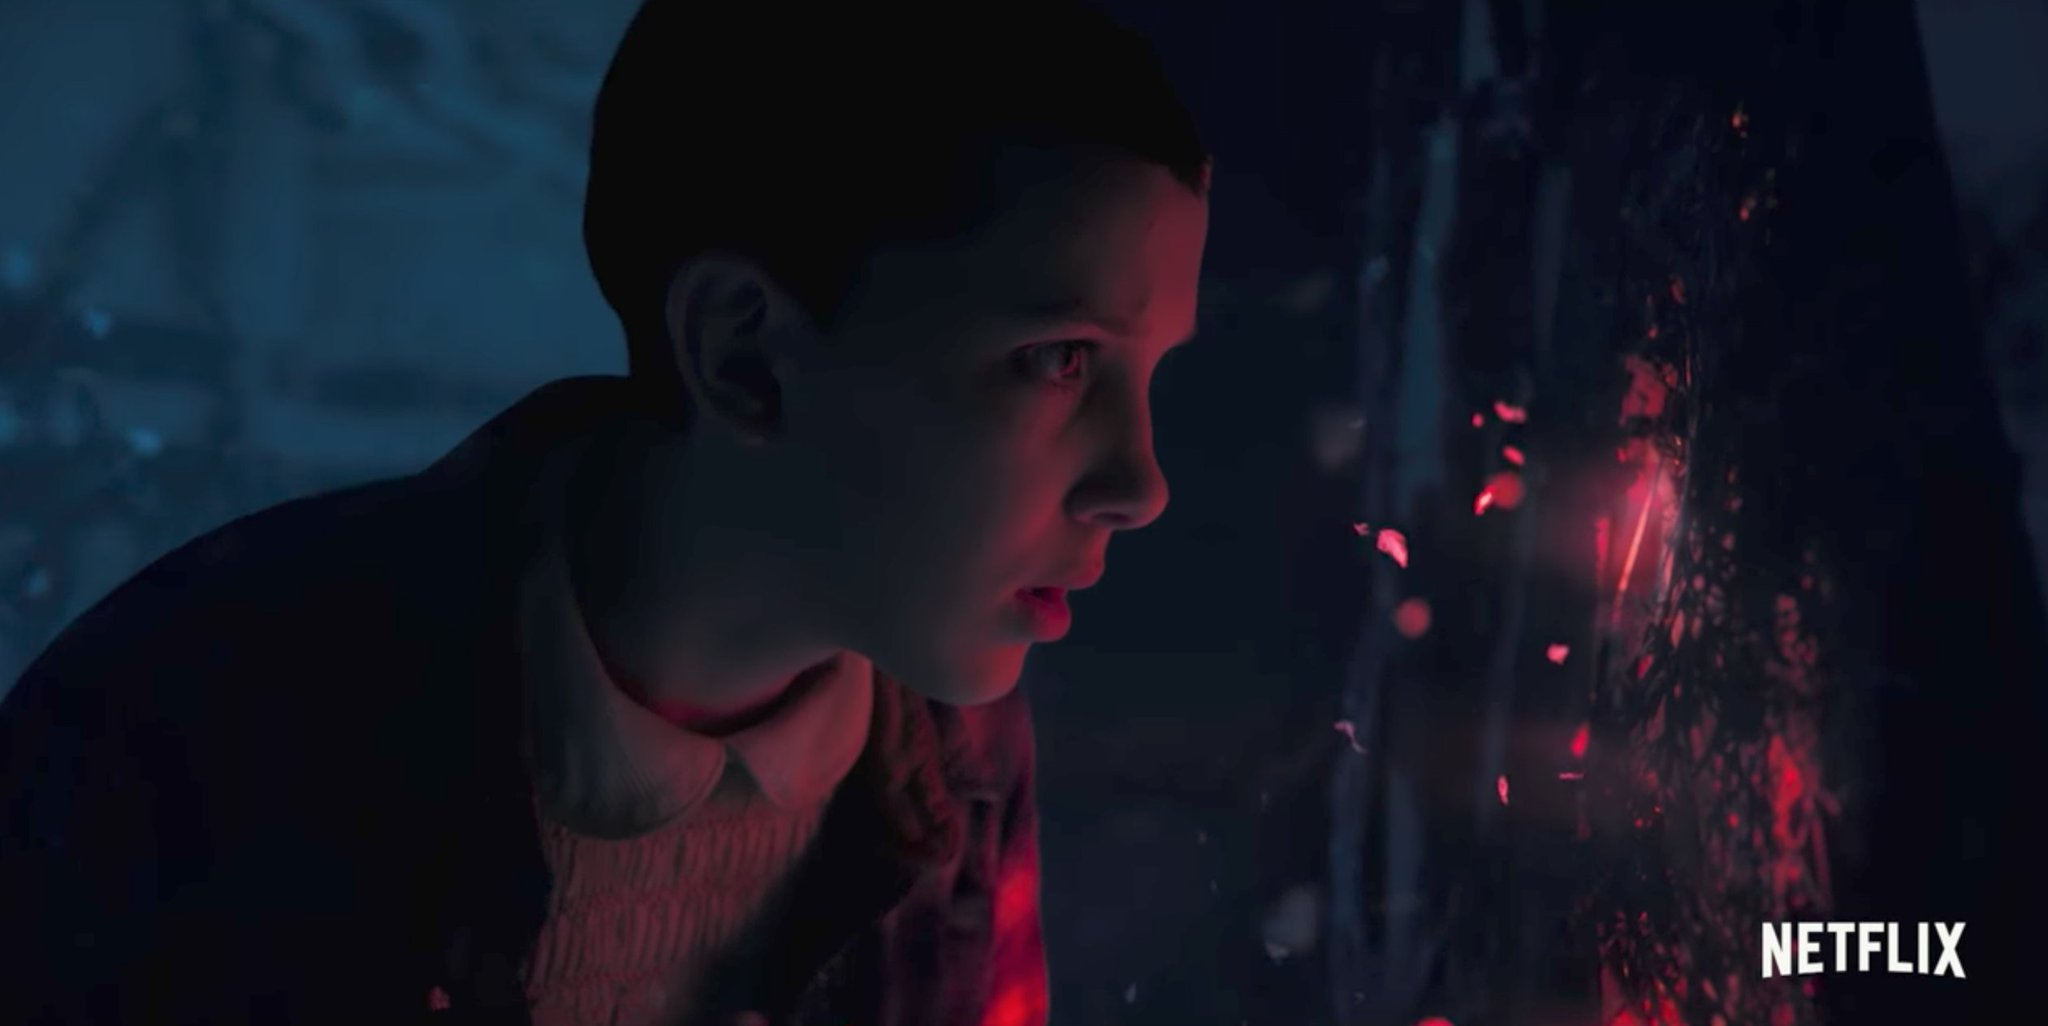 This new, graphic 'Stranger Things 2' clip shows how Eleven escaped the Upside Down: https://t.co/rGzwHovDTk https://t.co/jA7LsU7Csc